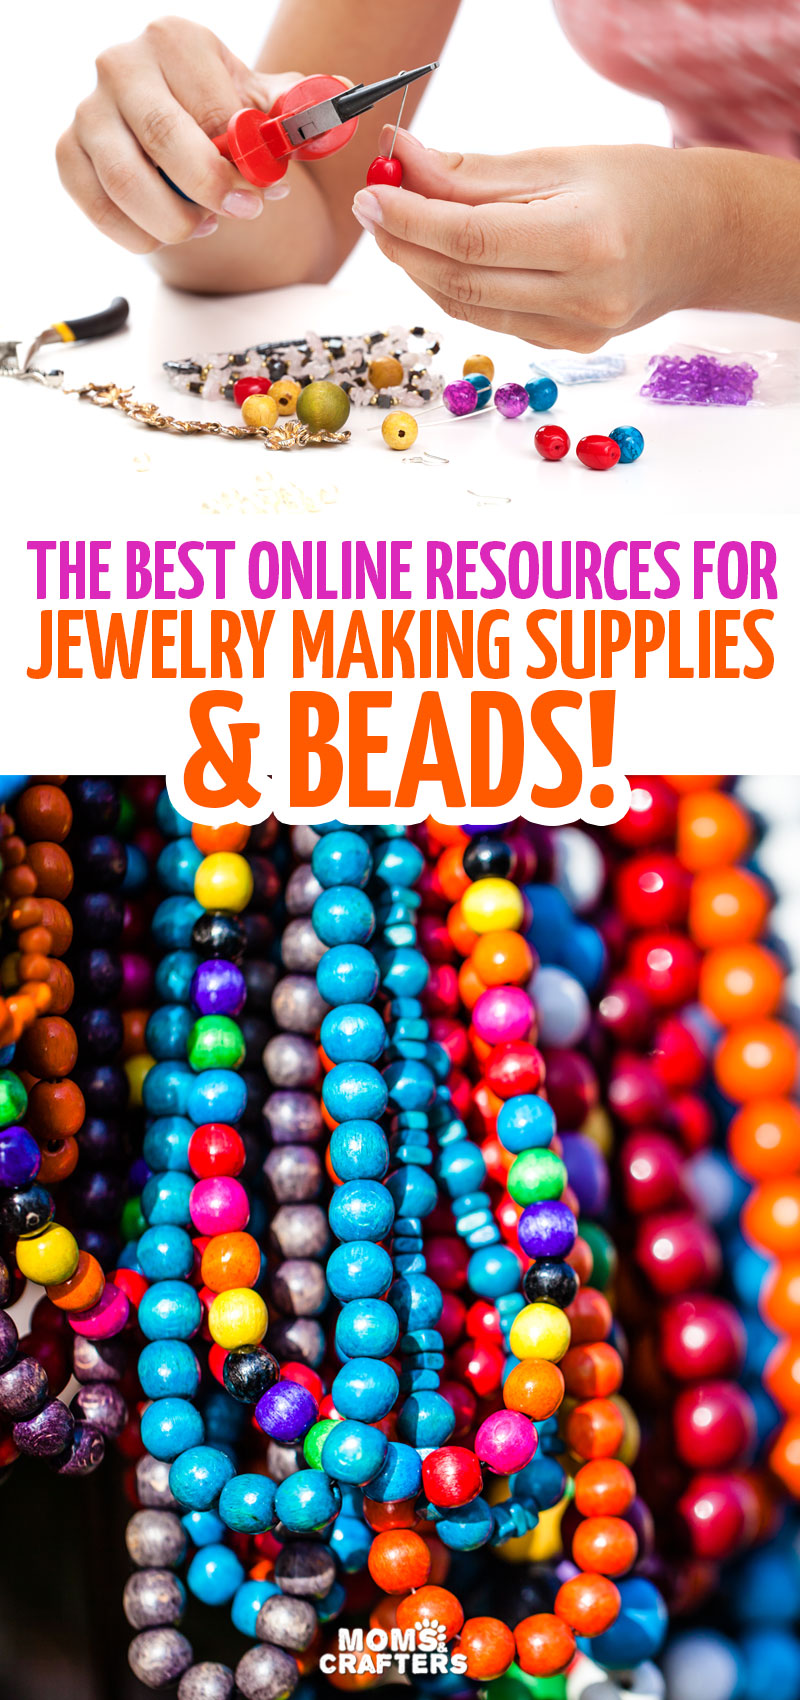 Click for some of the best places to buy beads onliine -and tips for beading and jewelry making beginners!